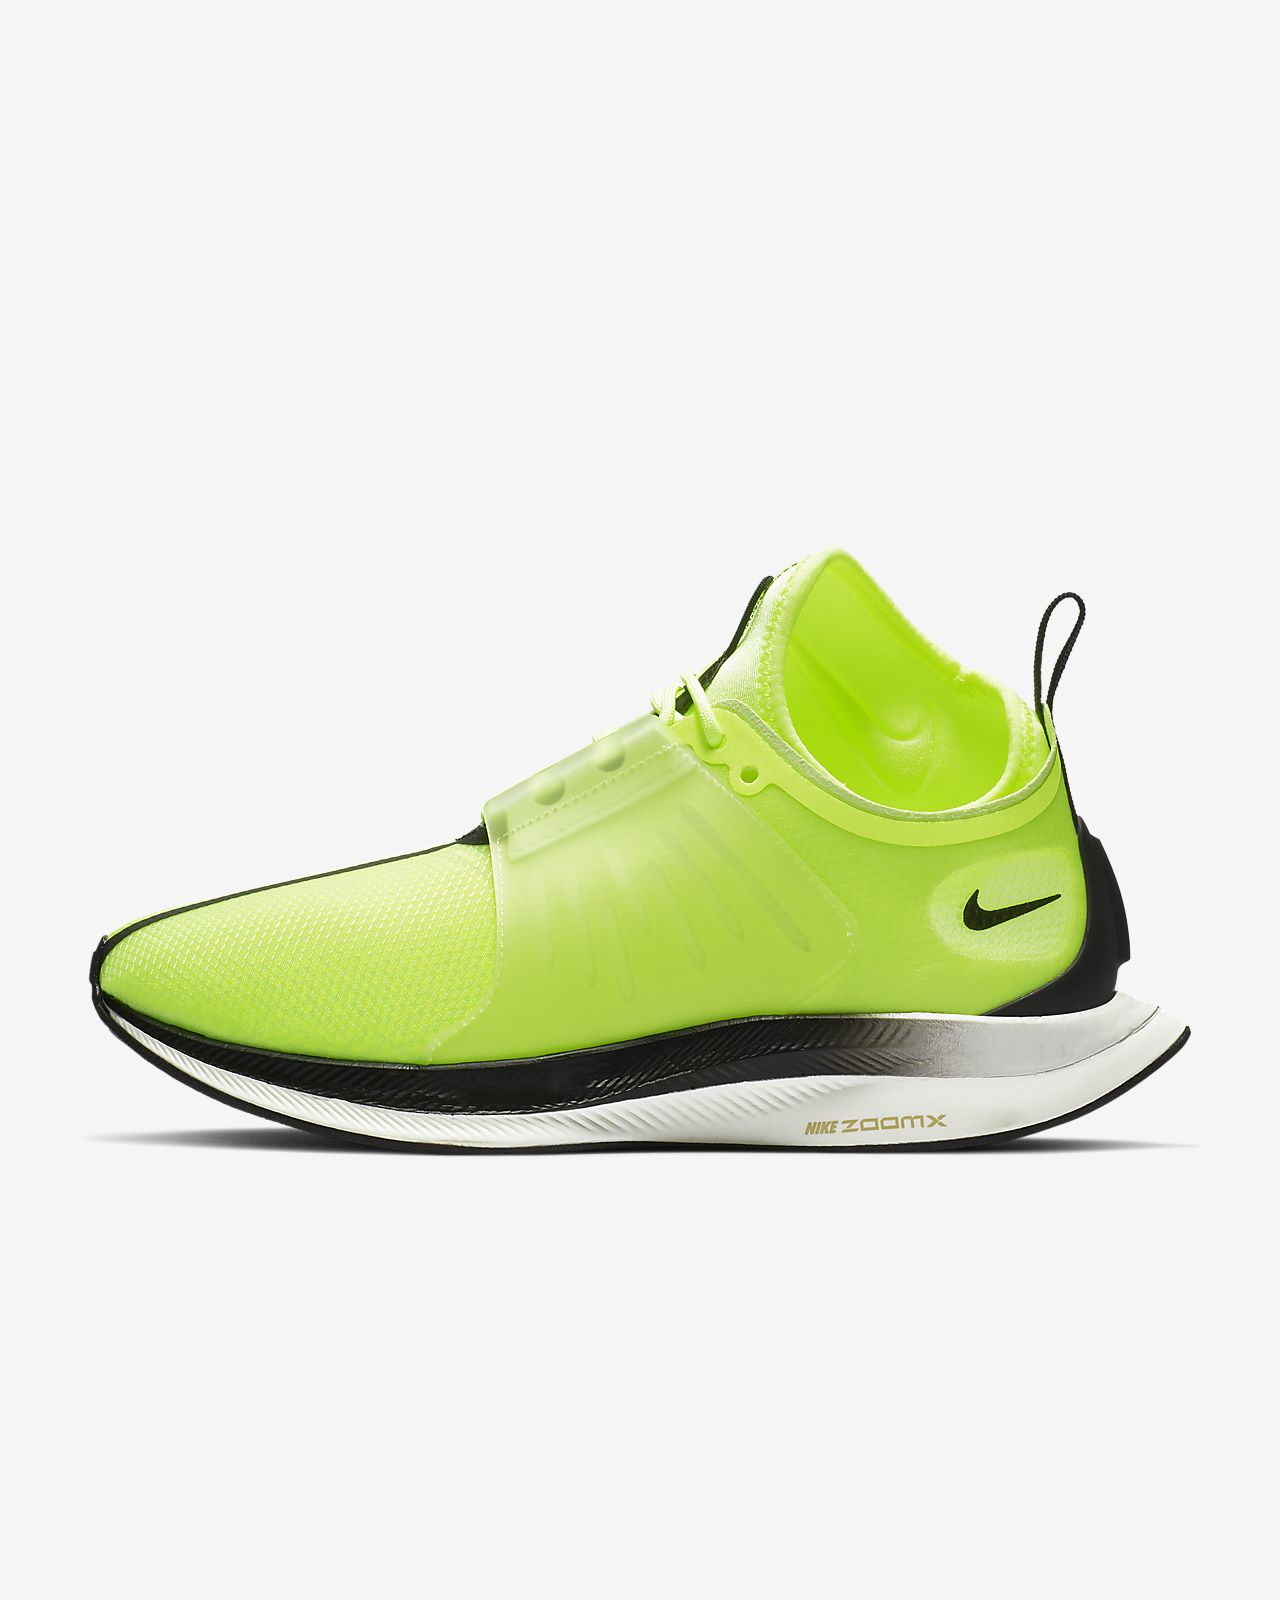 Nike Zoom Pegasus Turbo XX Women's Running Shoe